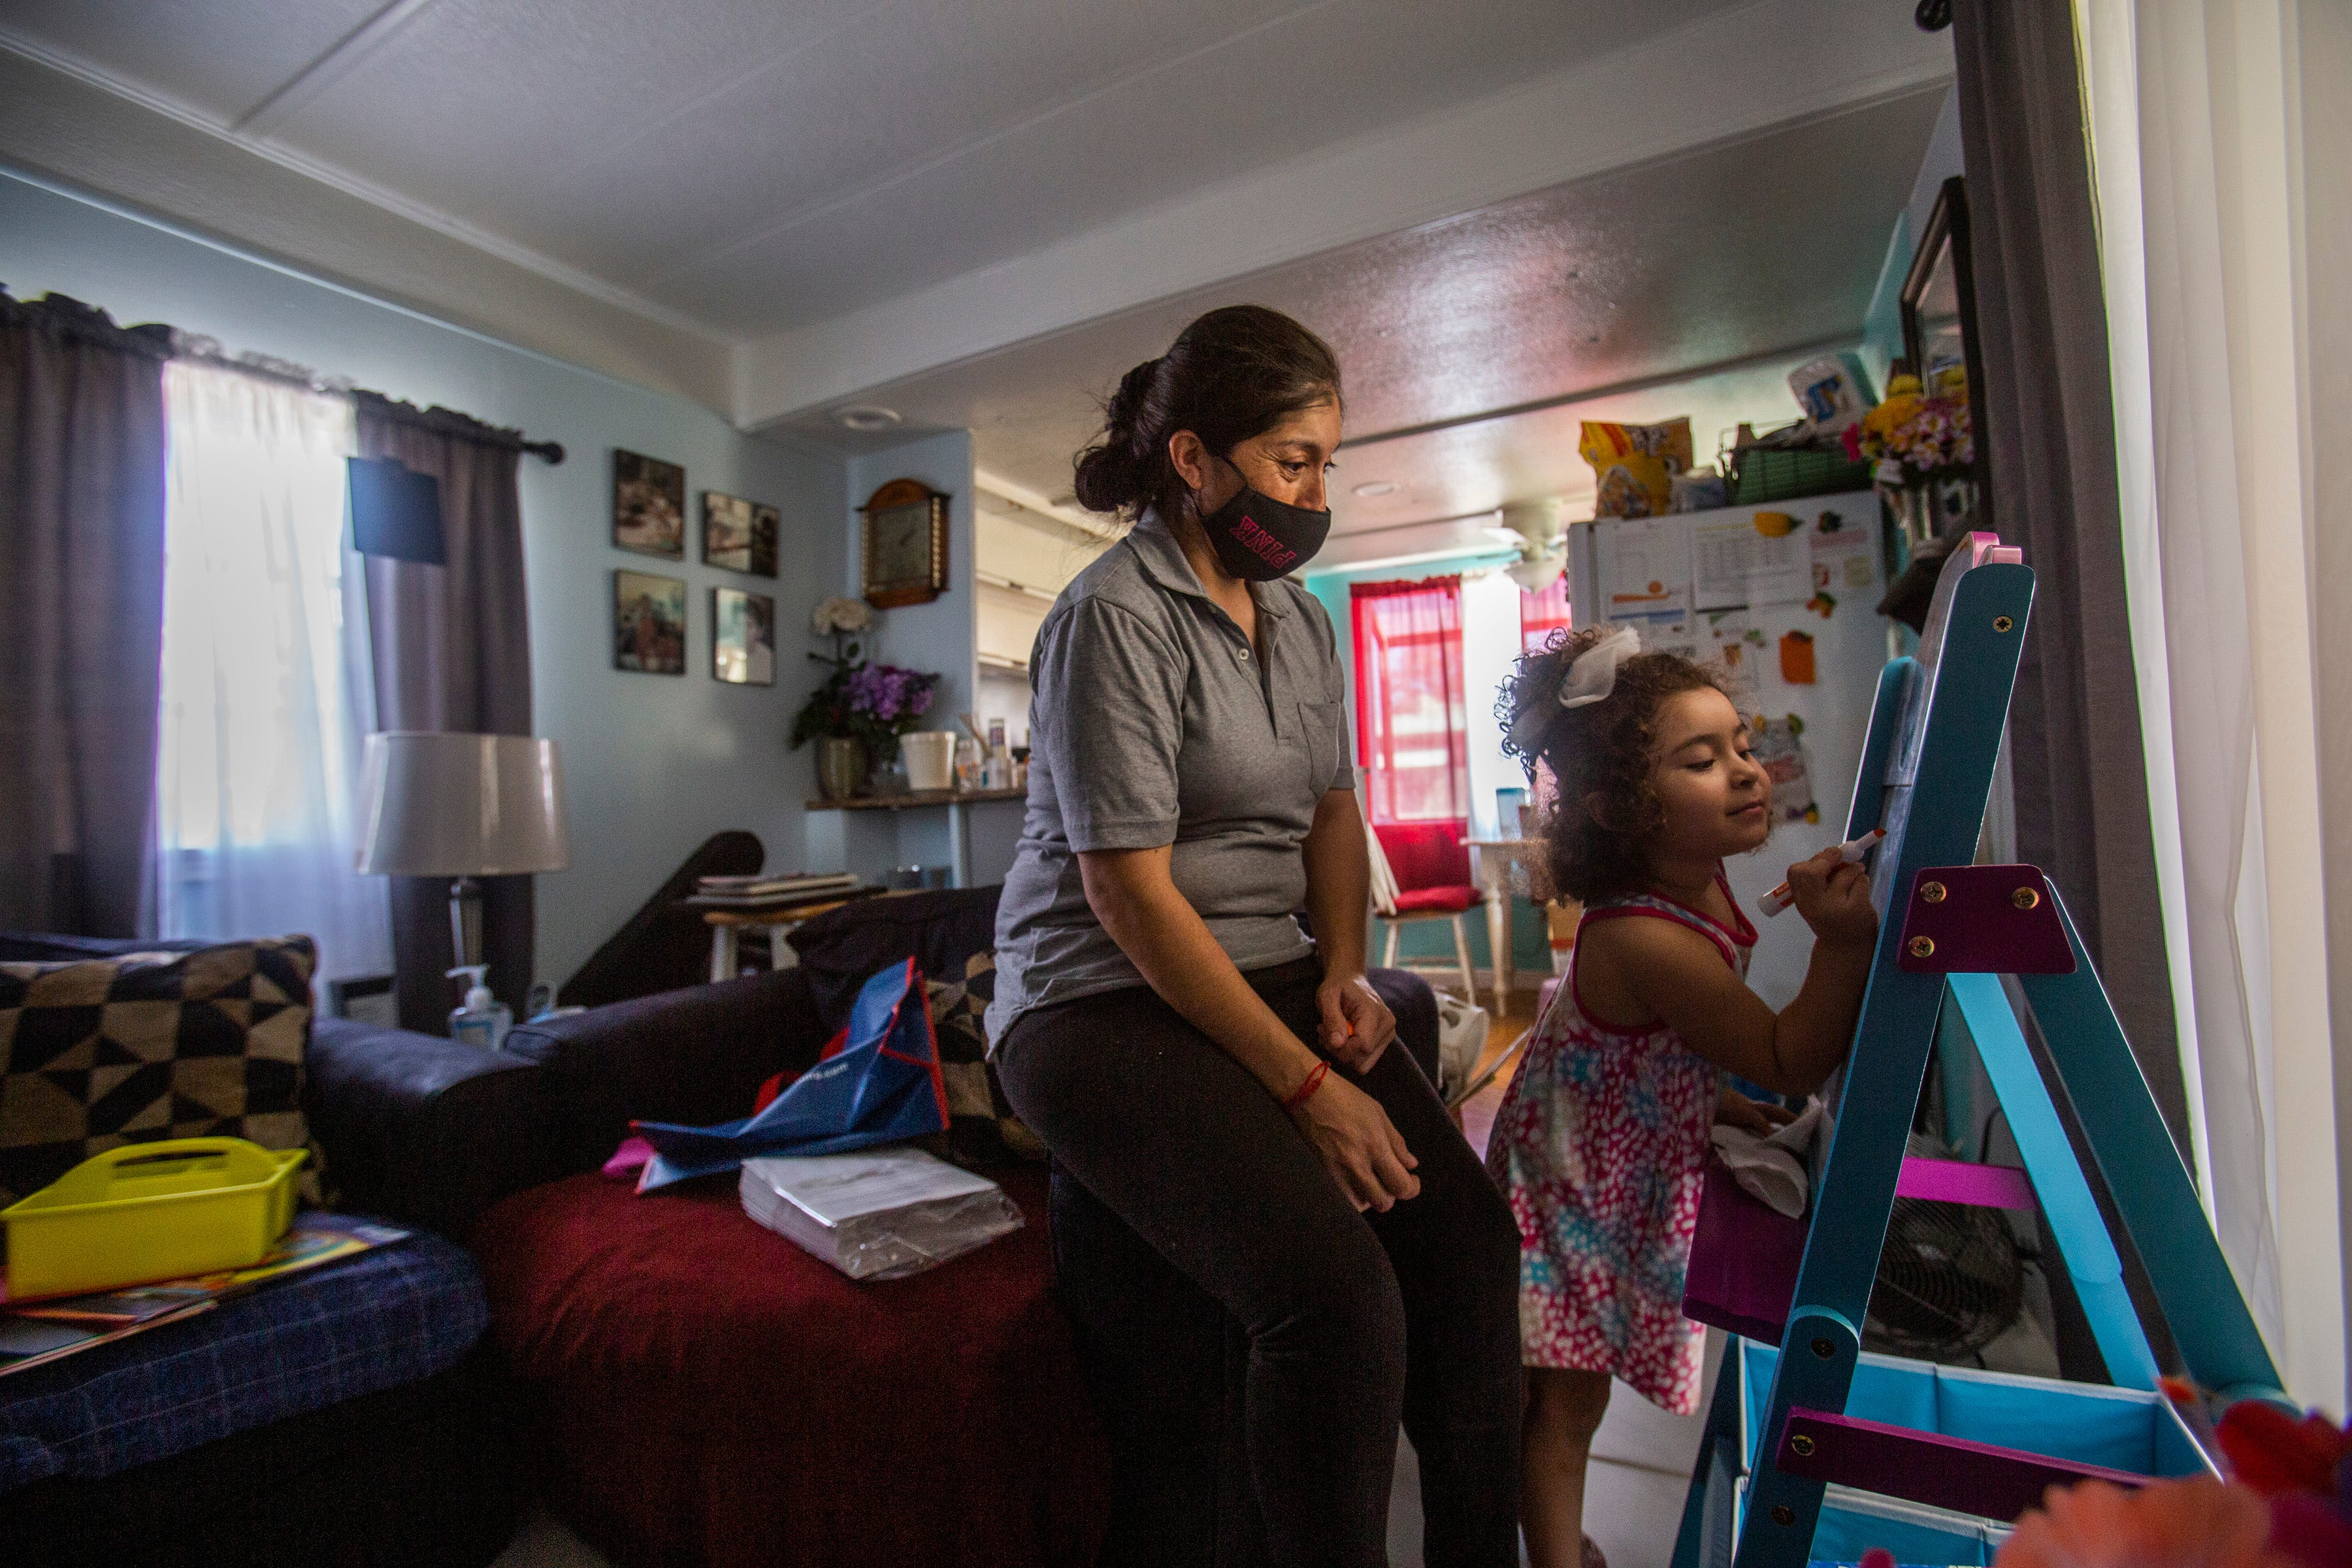 Guadalupe Serreno and her daughter, Luna, live in a one-bedroom mobile home with Guadalupe's elderly father. Serreno is unable to provide for her family without the help of her father's Social Security payment because her wages as a farm worker do not cover all of their expenses. She has been working in the fields of Imperial Valley for 20 years.